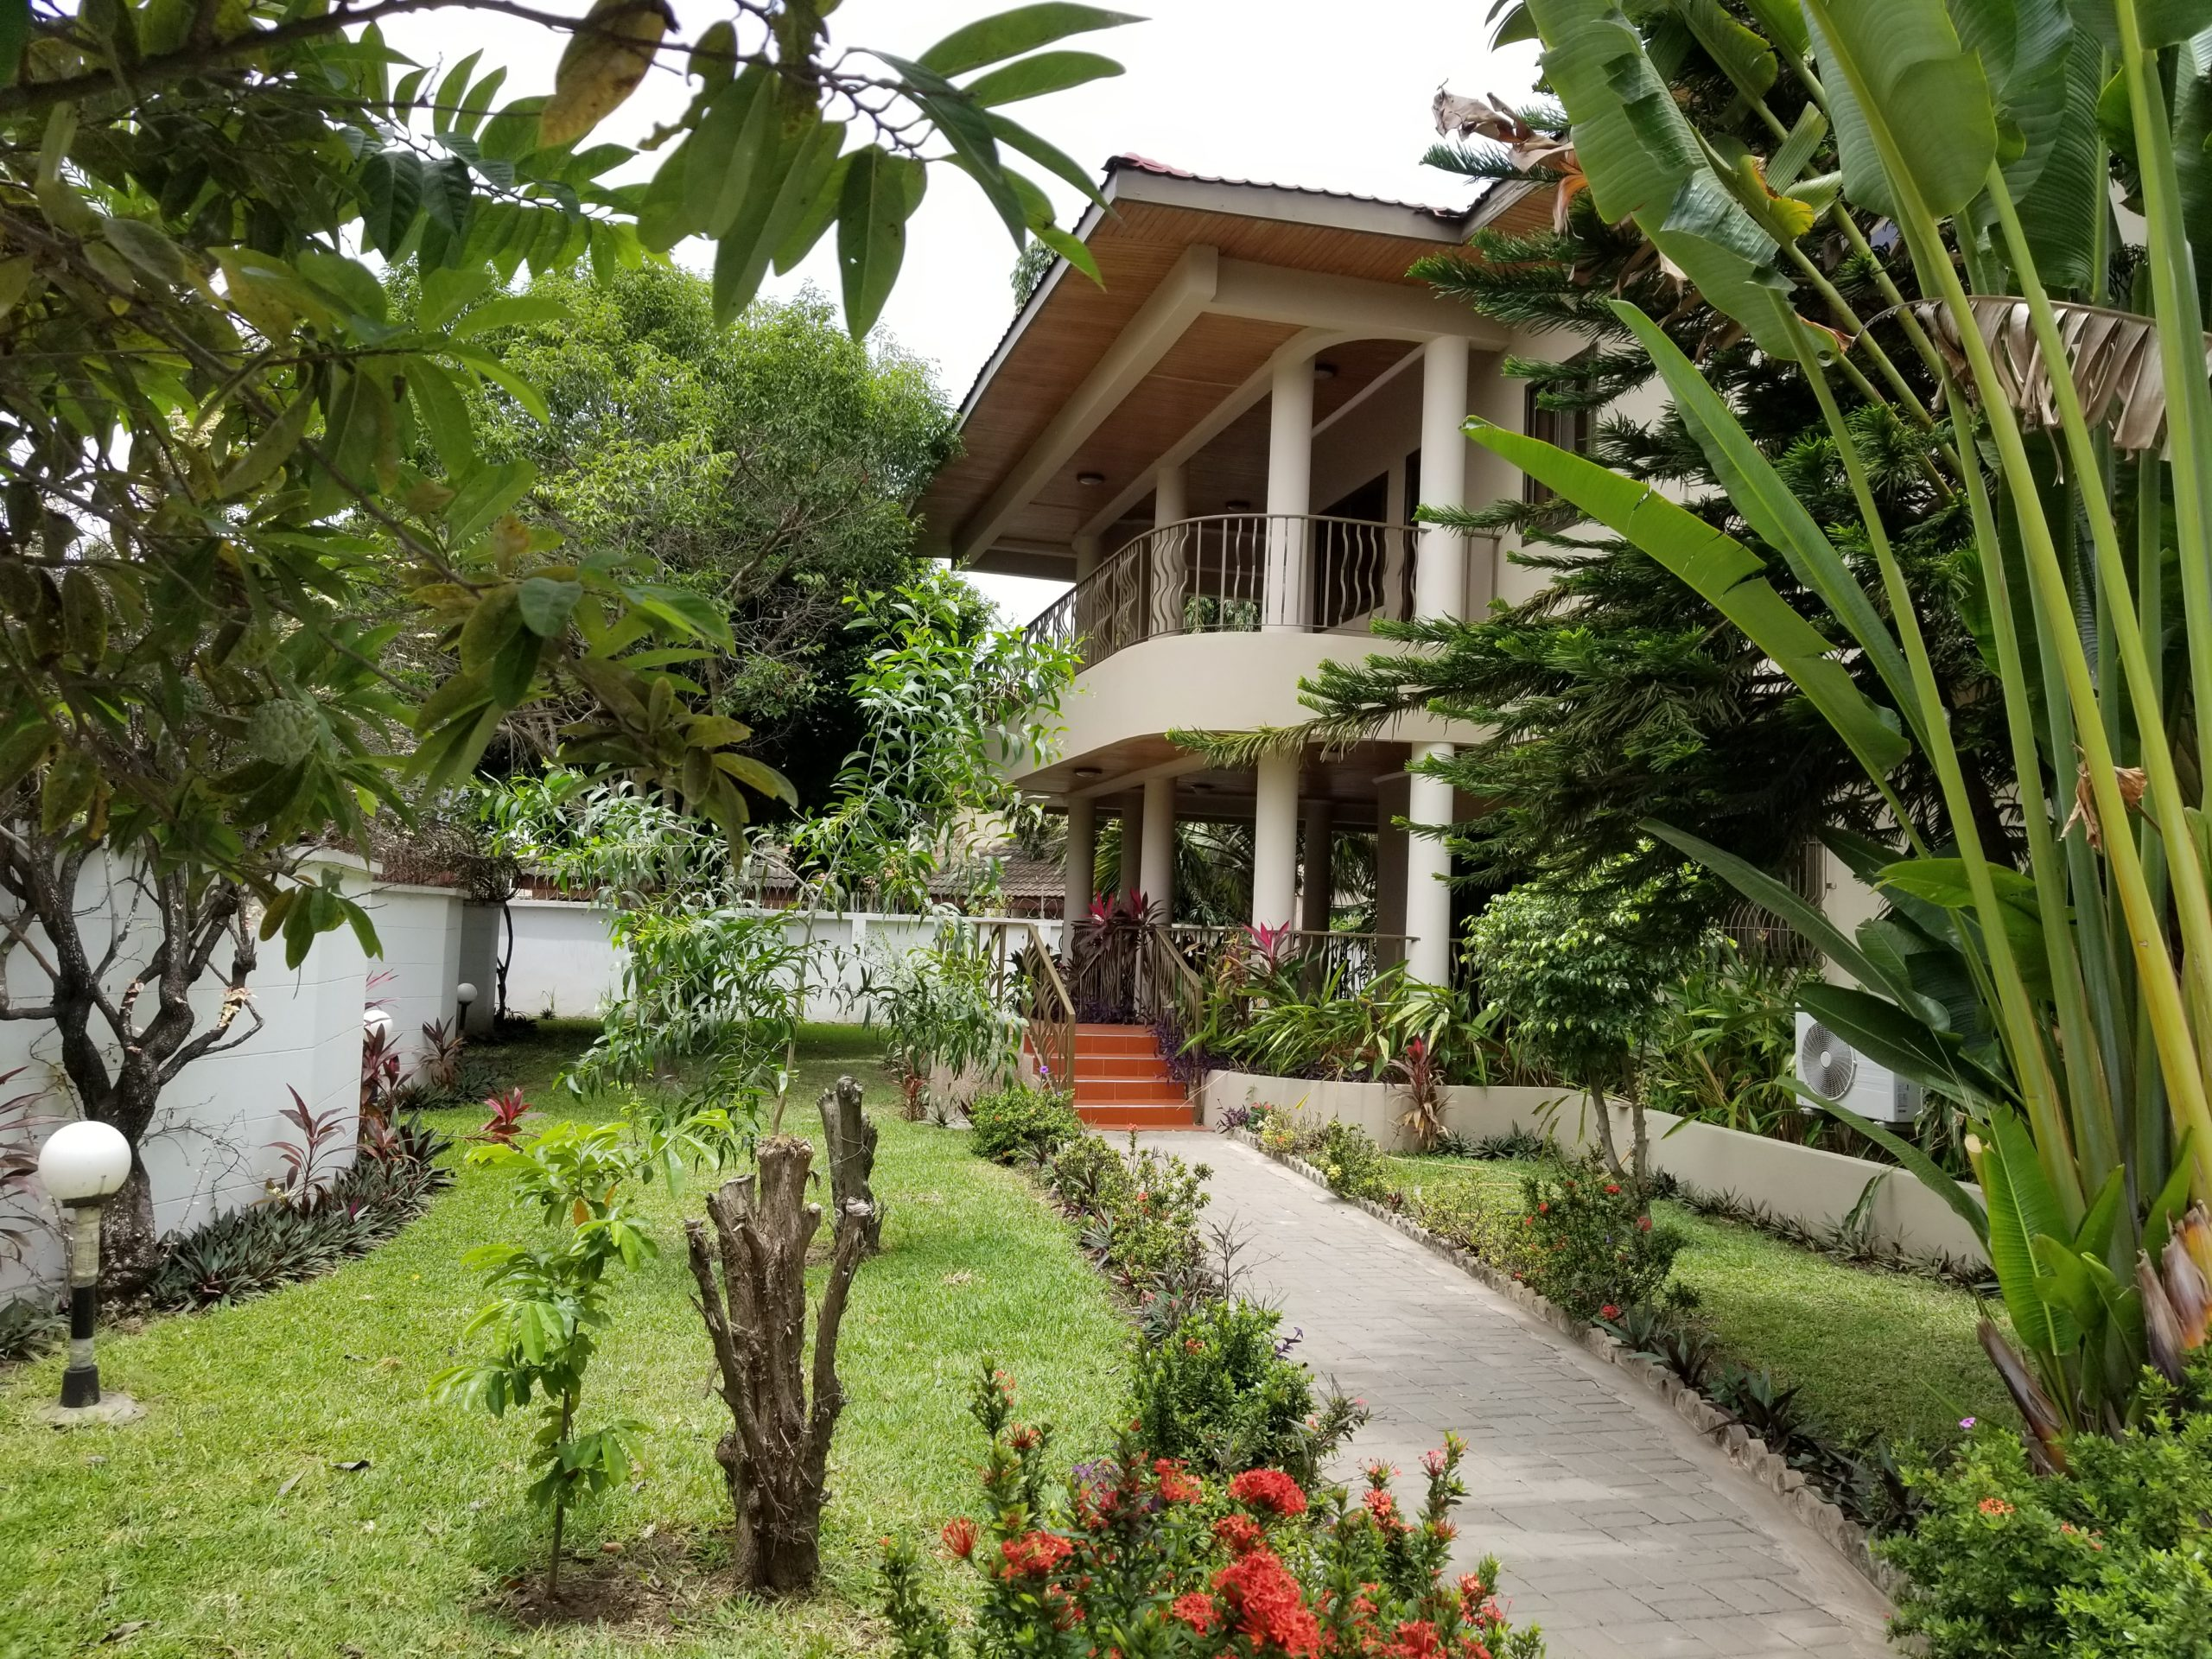 5 BEDROOM LUXURY UNFURNISHED HOUSE FOR RENT AT EAST CANTONMENTS